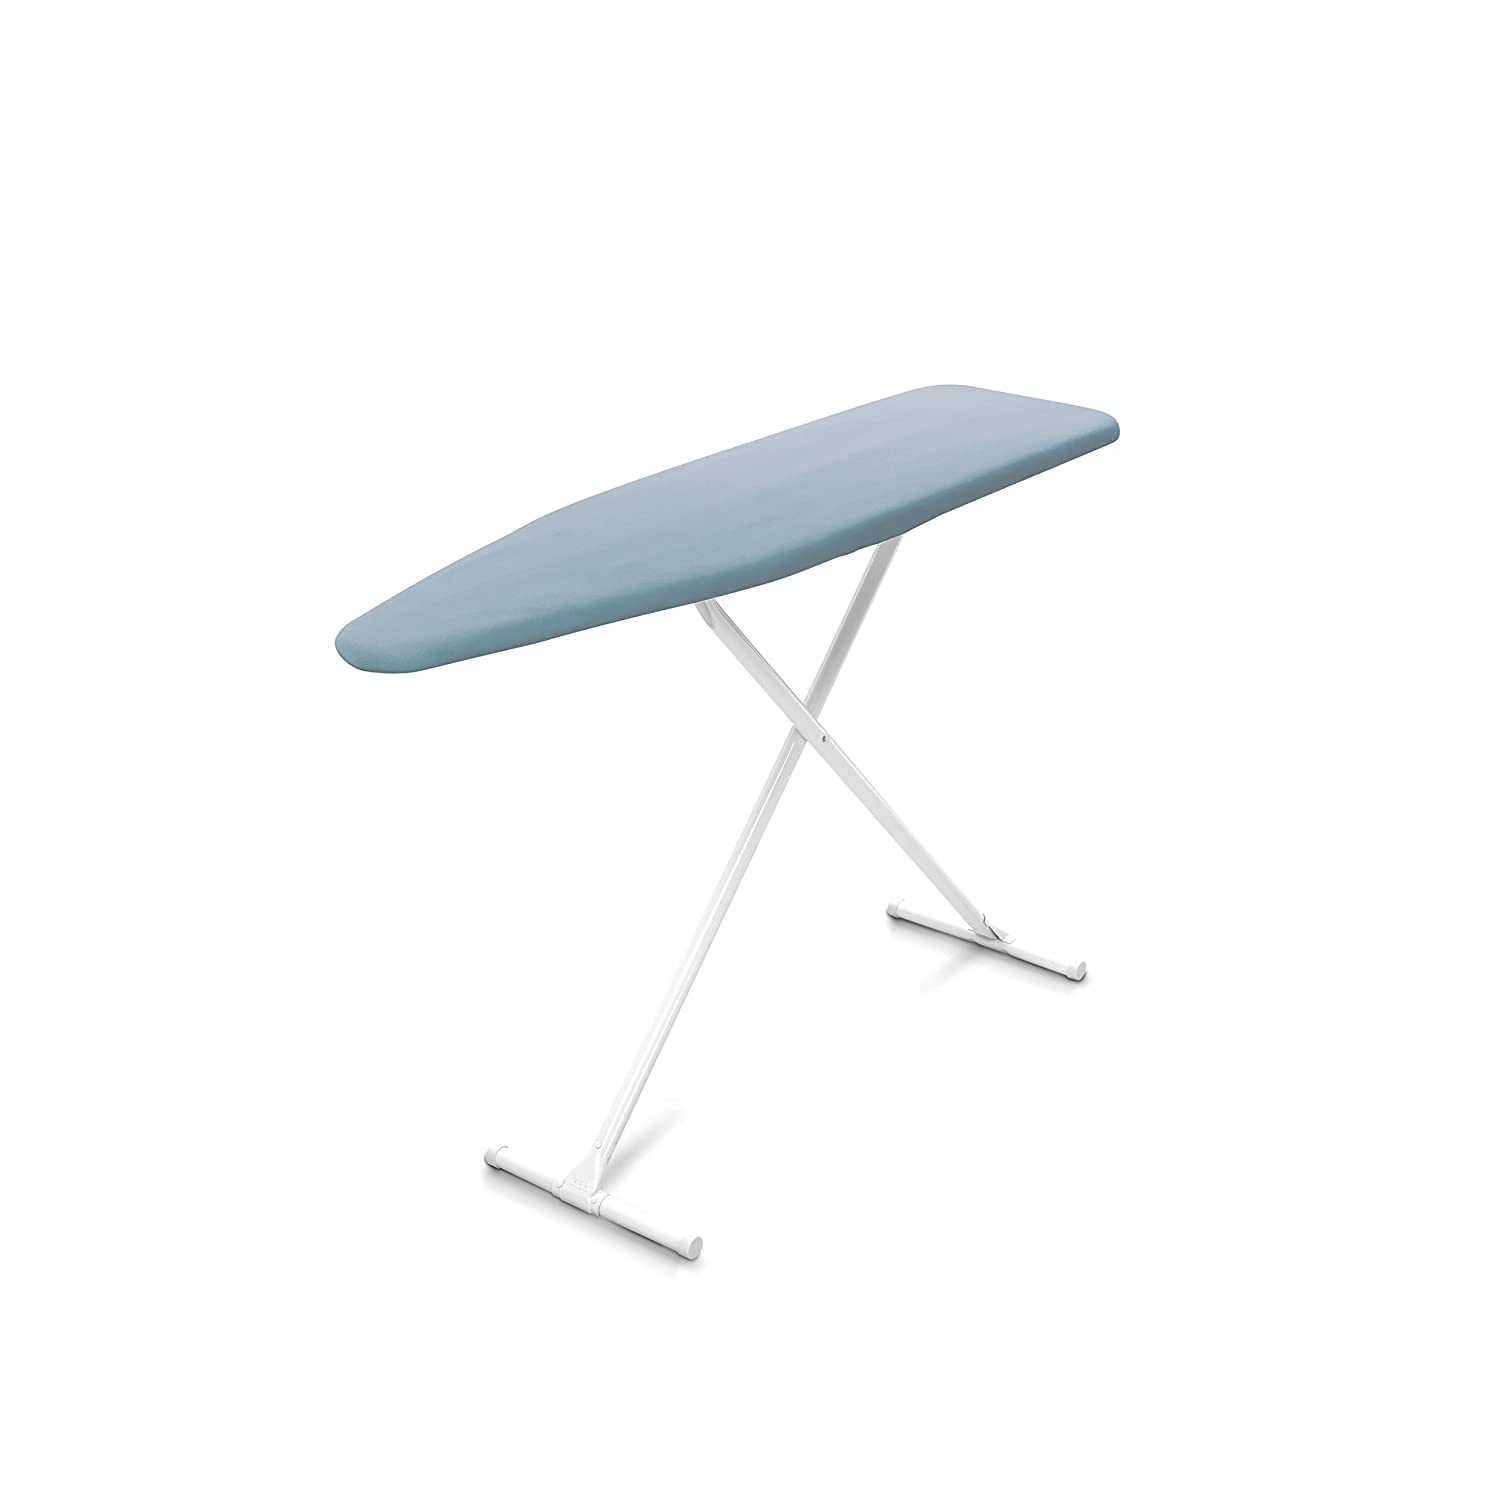 Homz T-Leg Ironing Board, Adjustable Height, Foam Pad with Cotton Cover, Blue